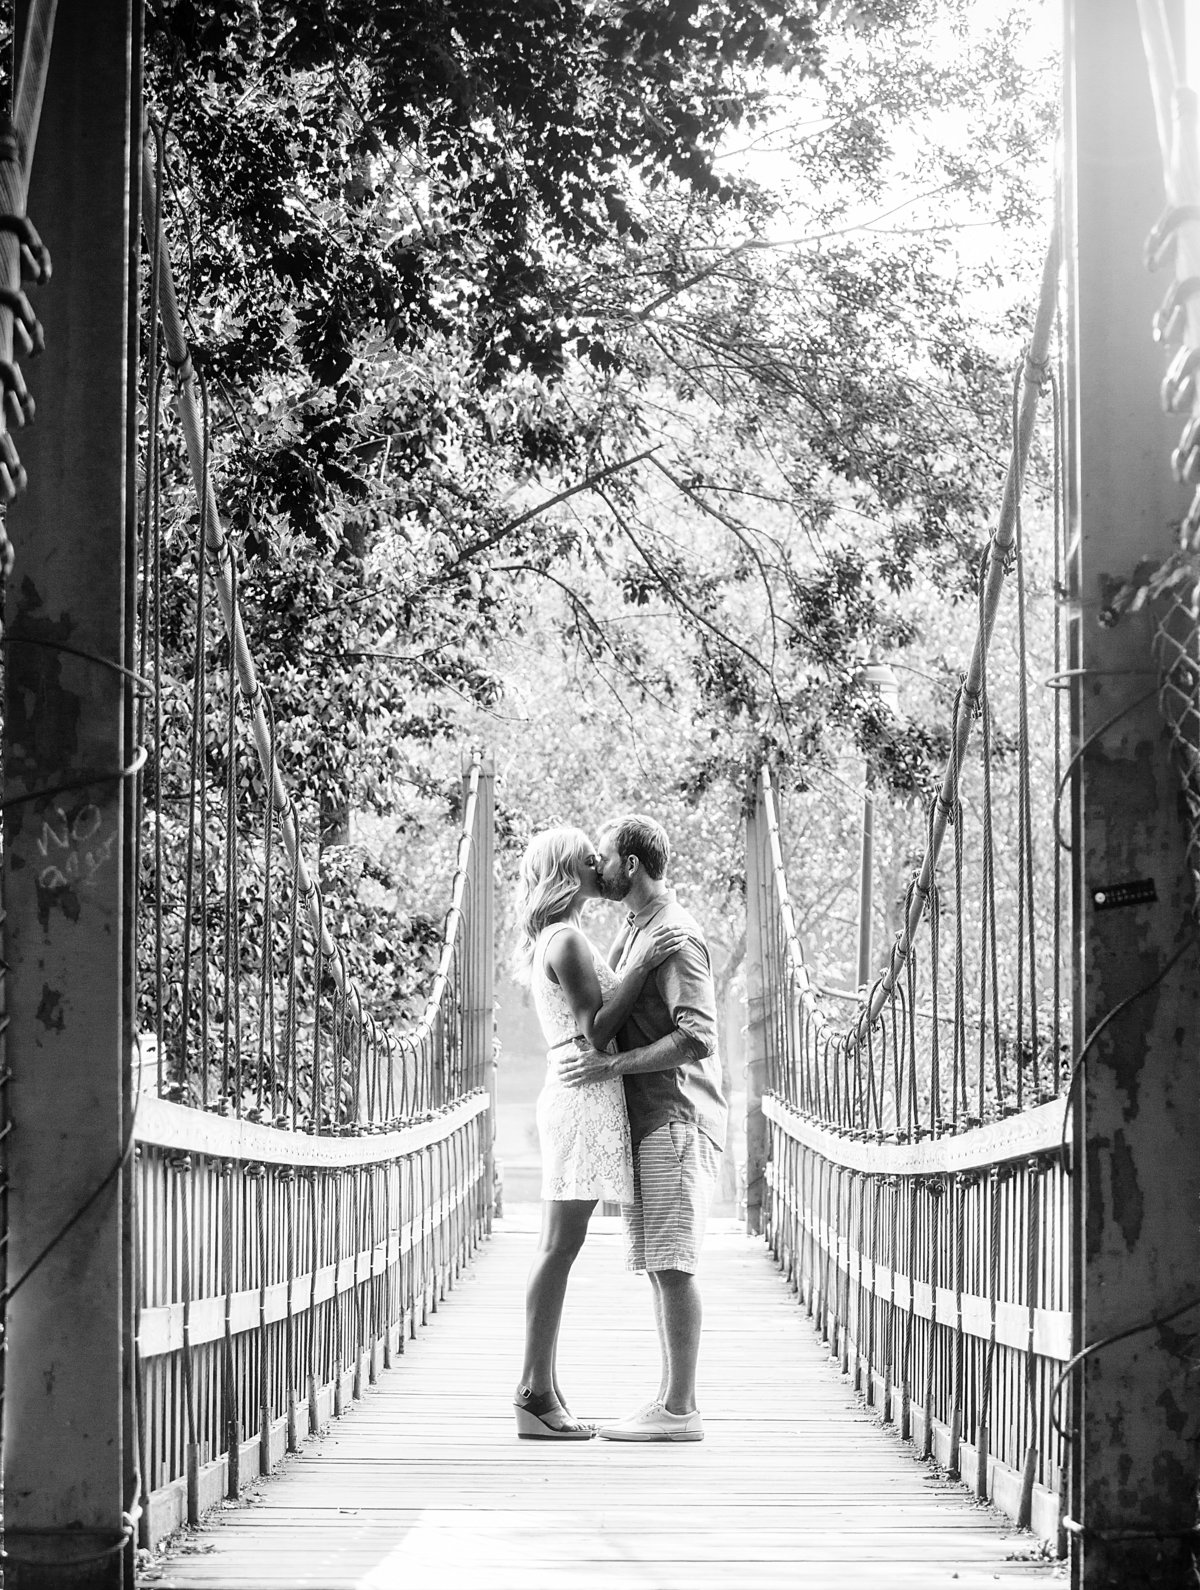 charlotte wedding photographer jamie lucido captures an engaged  couple embracing on a bridge at Freedom Park